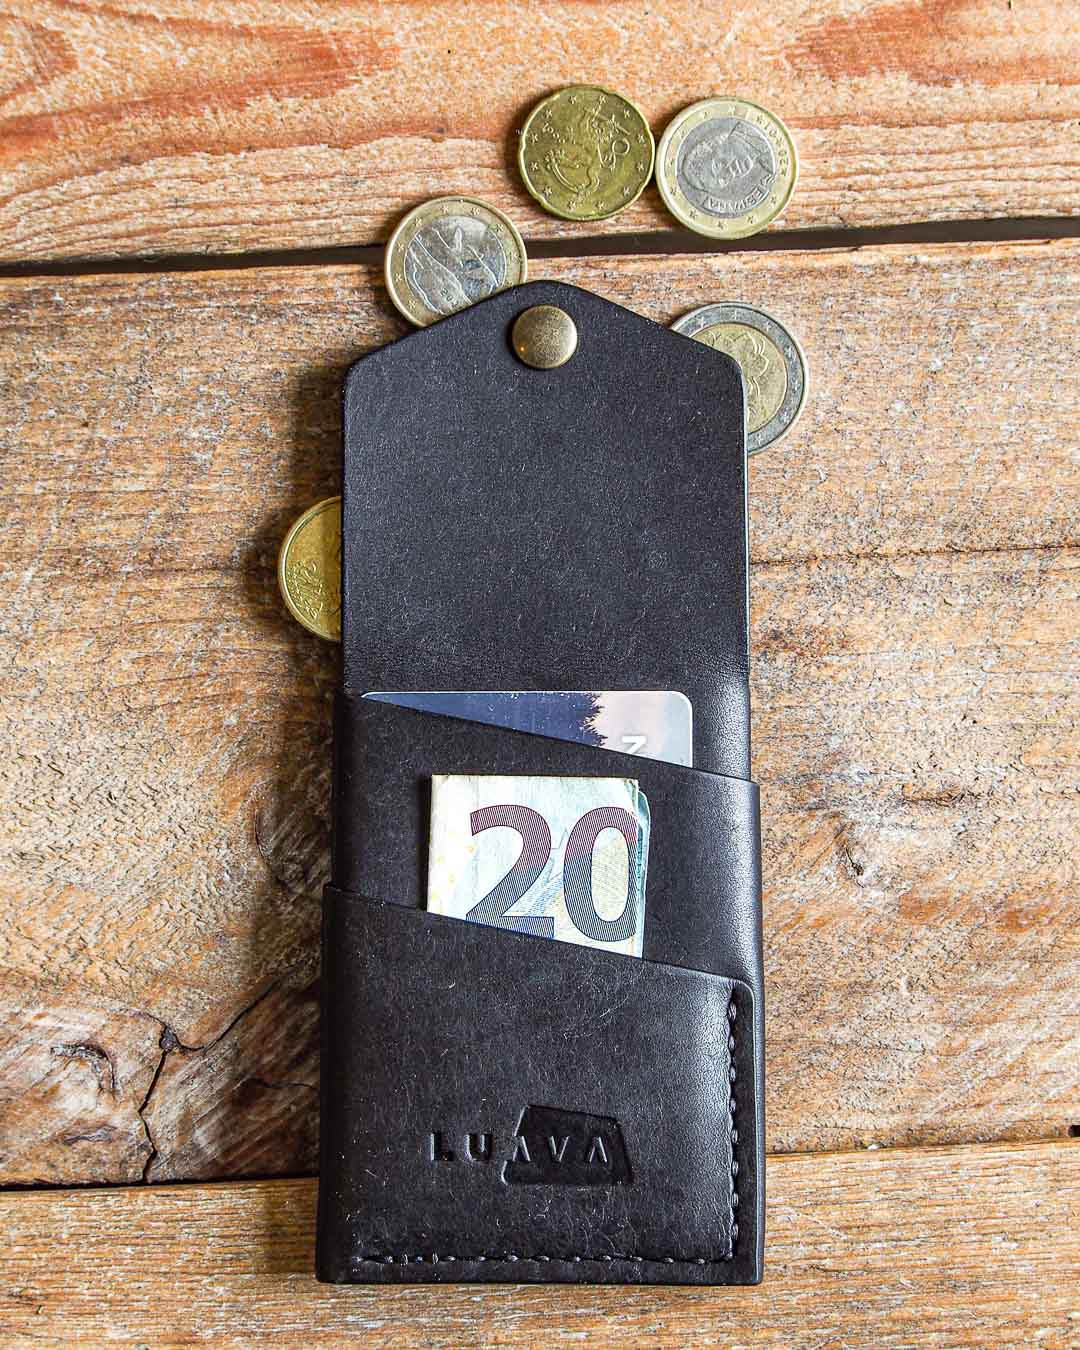 Luava handmade leather wallet handcrafted card holder cardholder made in finland overfold pueblo black back open in use